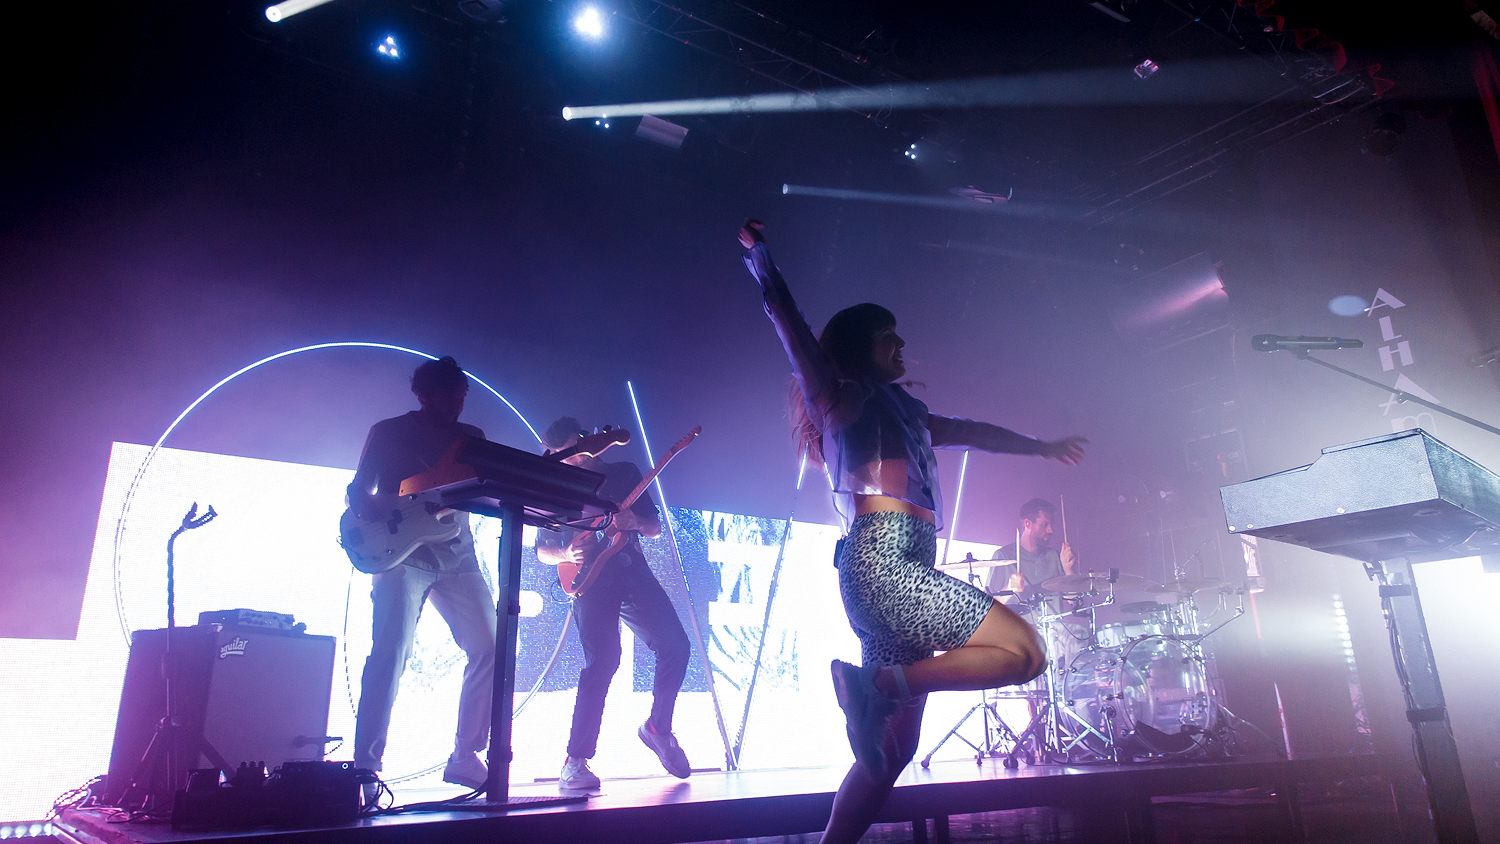 March 12th, 2020: When Oh Wonder Electrified the Alhambra in Paris